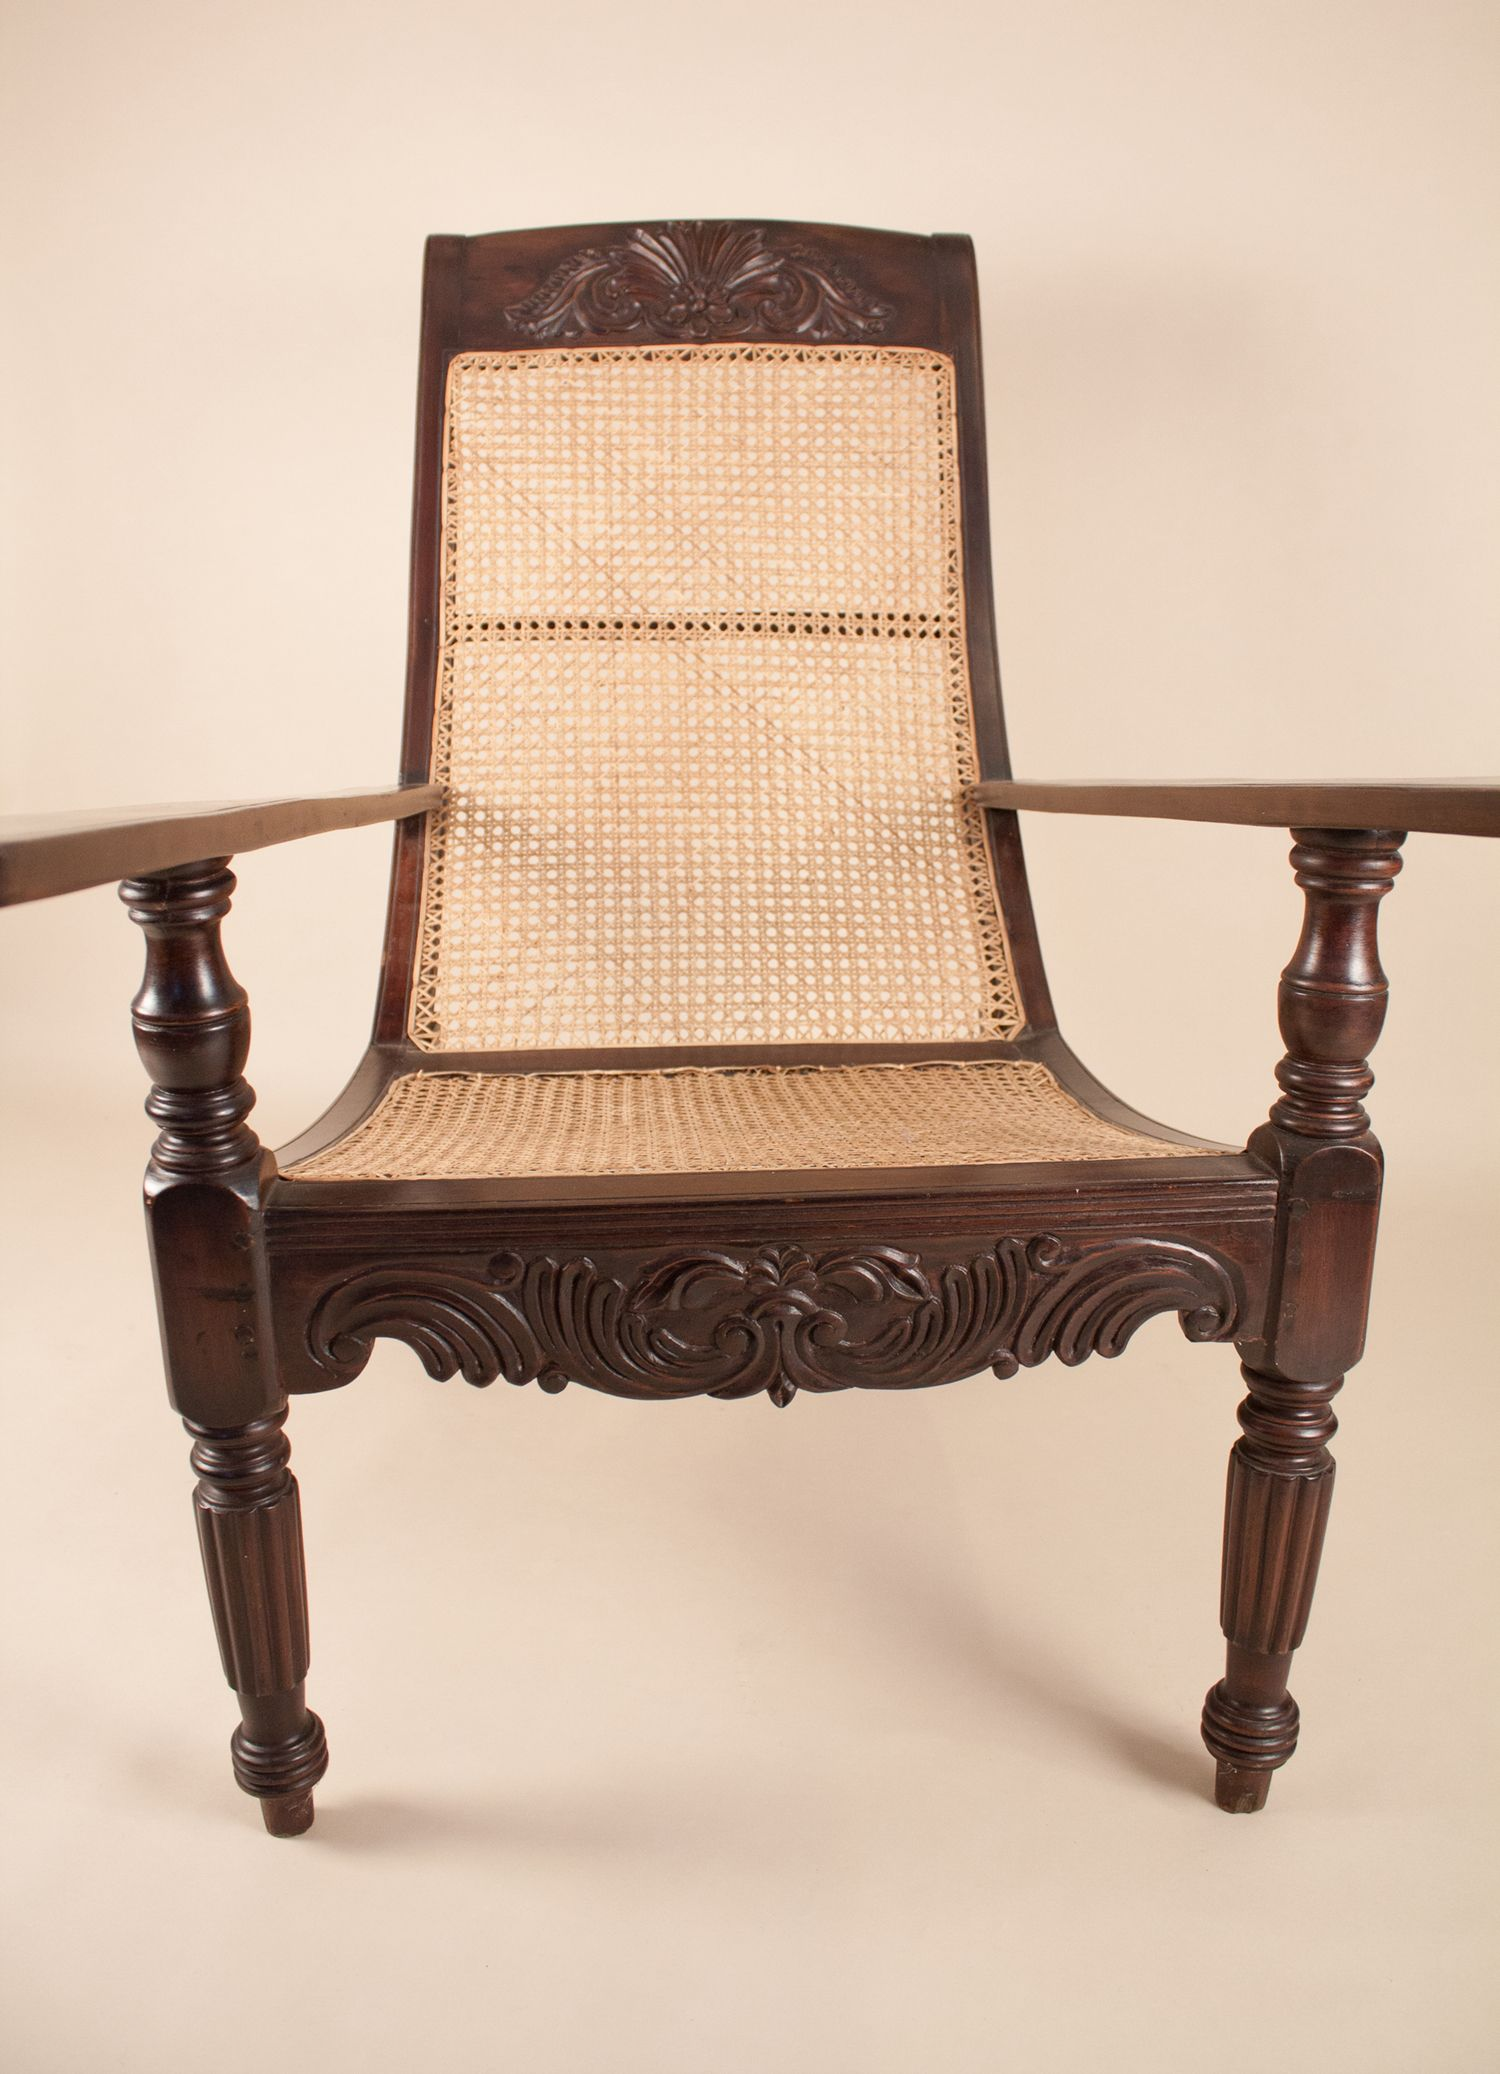 ... Antique British Colonial Plantation Chair ... - Antique Anglo-Indian Exotic Hardwood Caned Planters Chair Or